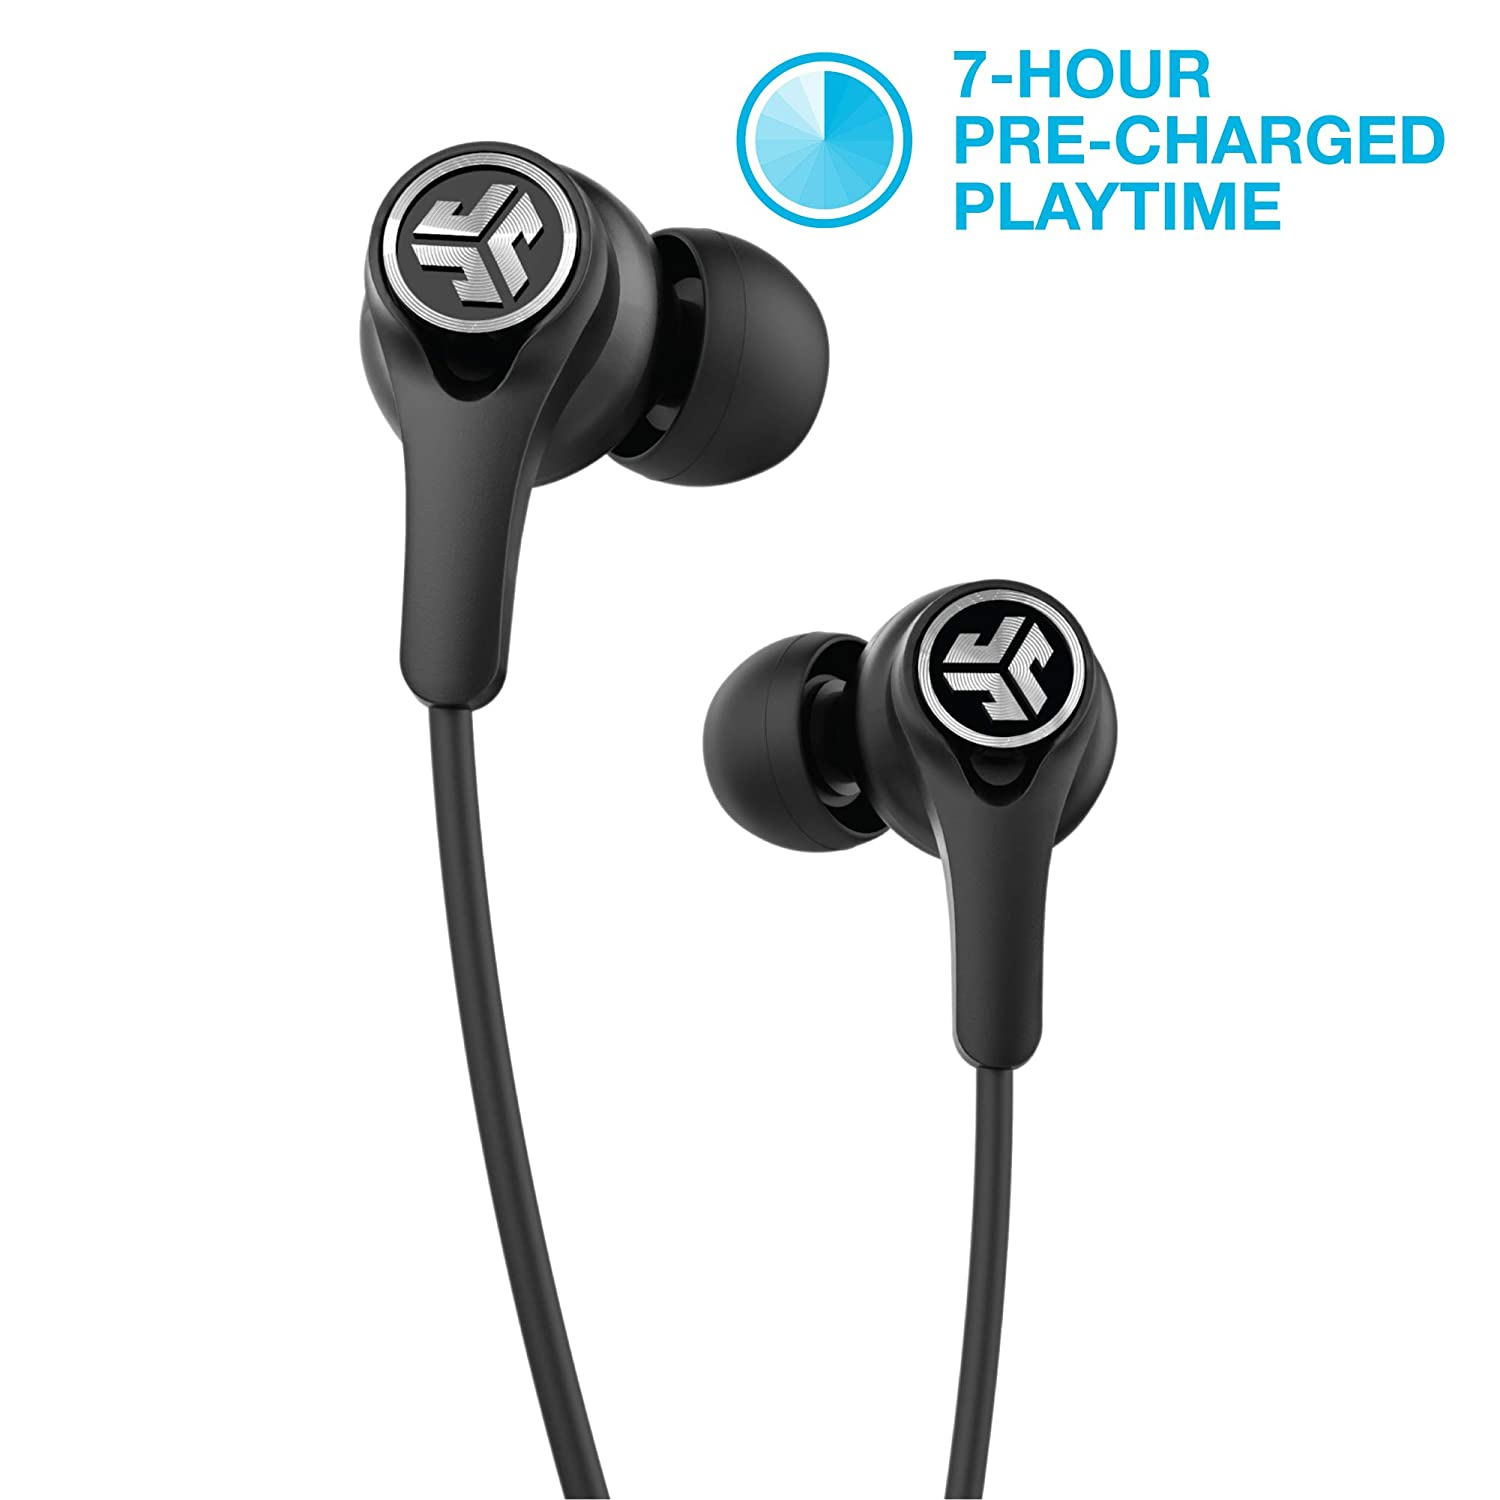 6f3d6ca6680 JLab Audio Epic Executive Wireless Active Noise Canceling Earbuds |  Bluetooth 4.1 | 11-Hour Battery Life | Universal Music Control | Bluetooth  Headphones, ...